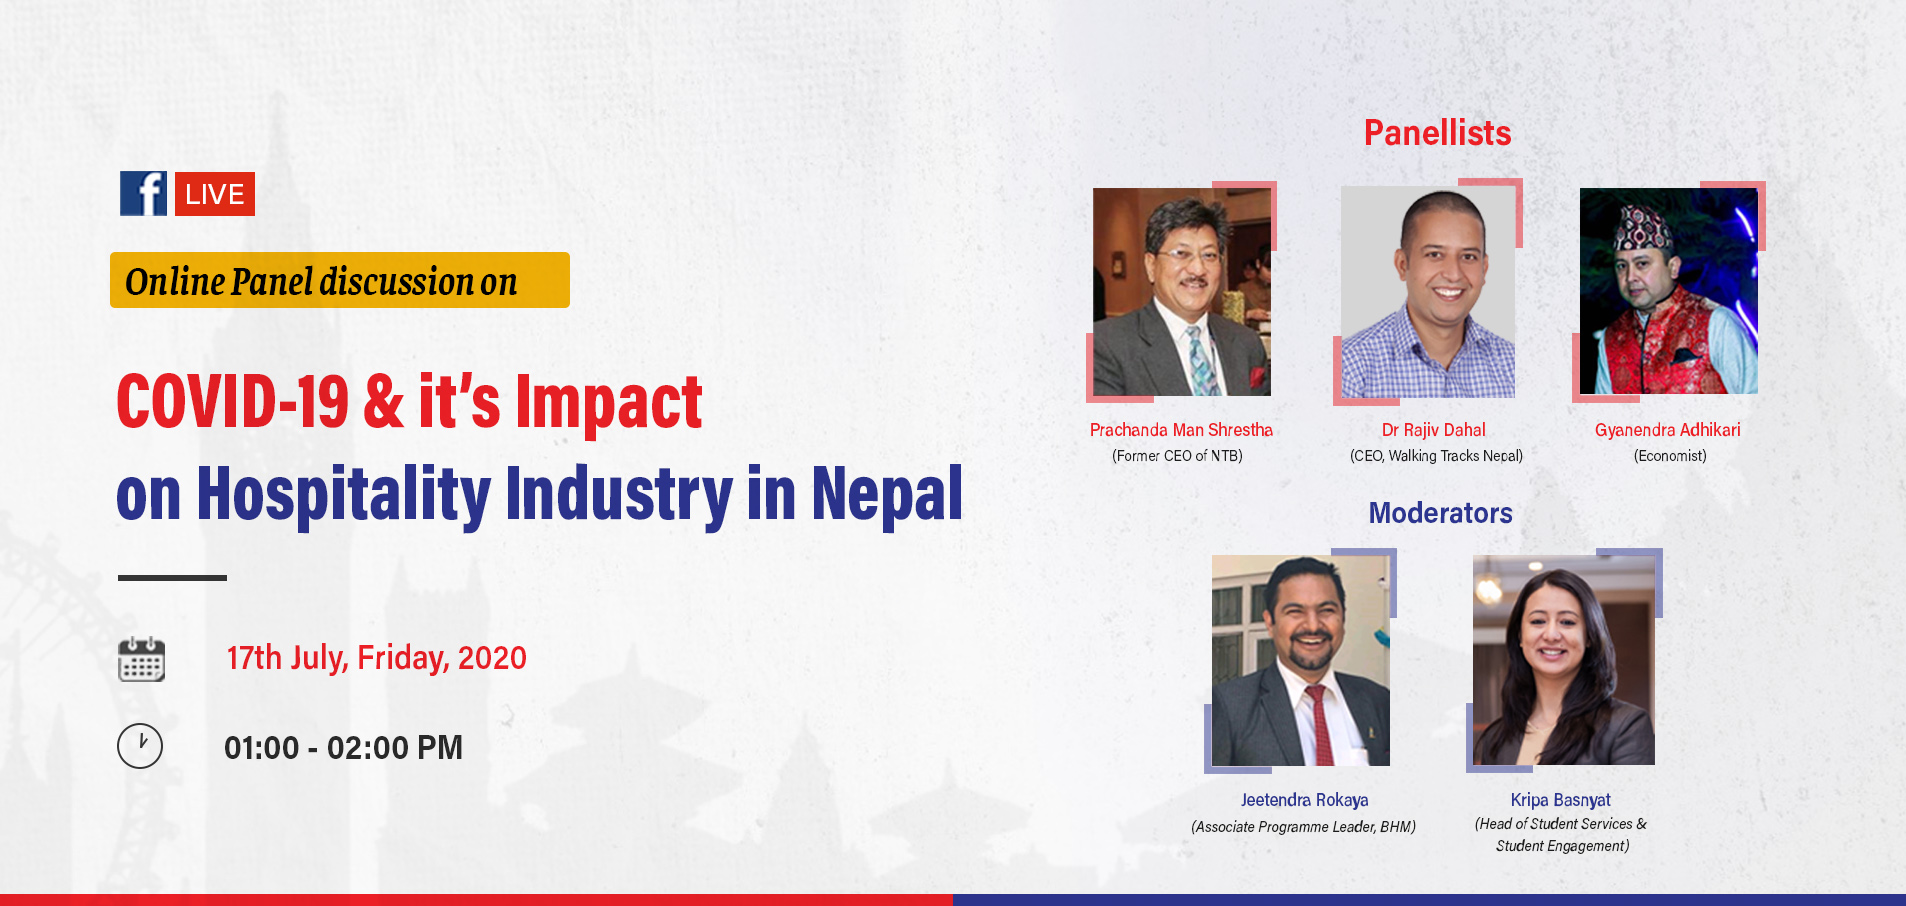 COVID 19 AND ITS IMPACT ON THE HOSPITALITY INDUSTRY IN NEPAL